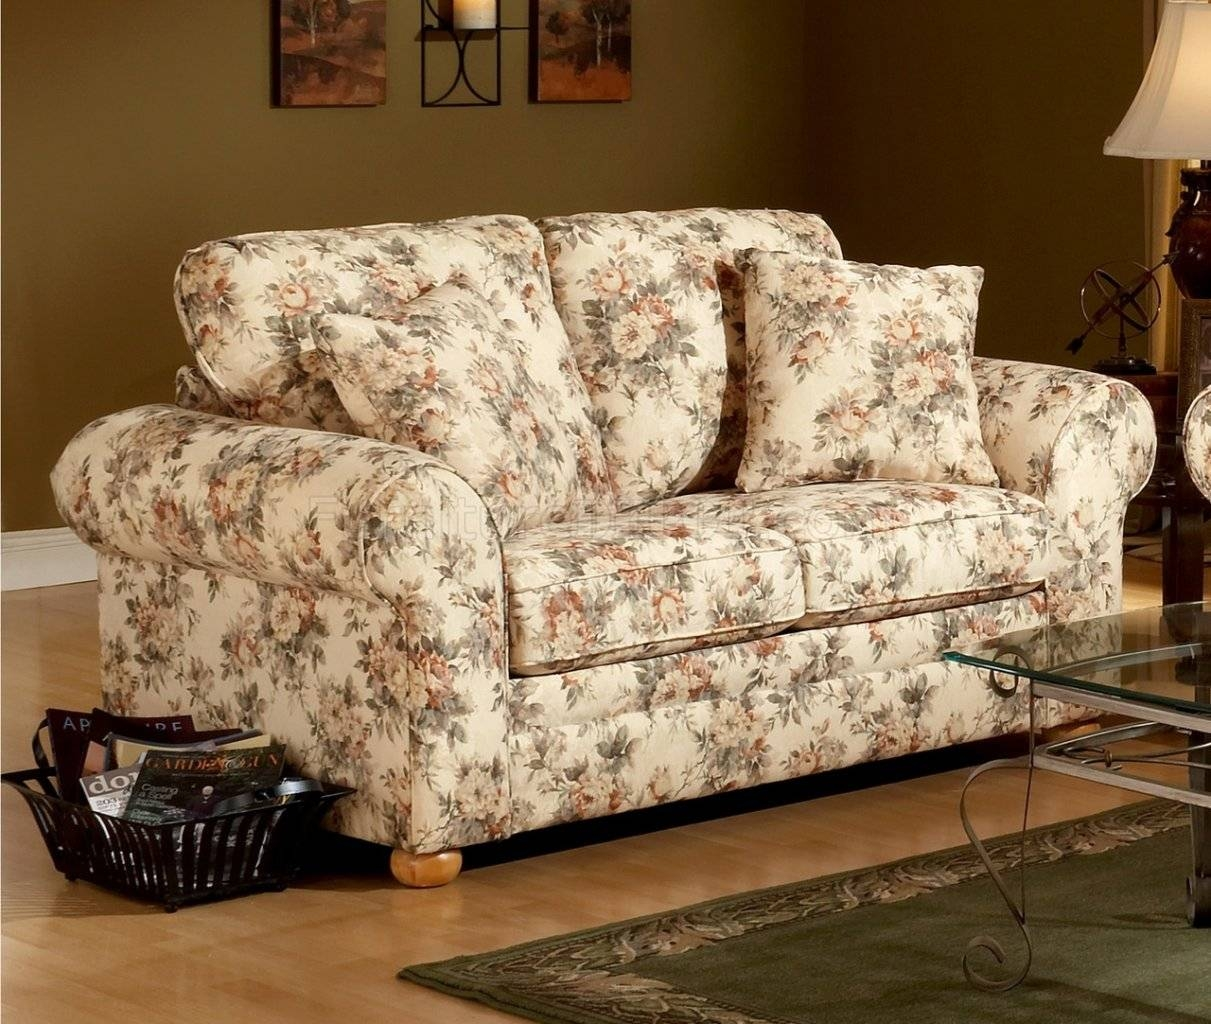 Floral Sofas, Ellie Floral 4 Seater Sofa Ellie Floral Dfs with Floral Sofa Slipcovers (Image 5 of 15)